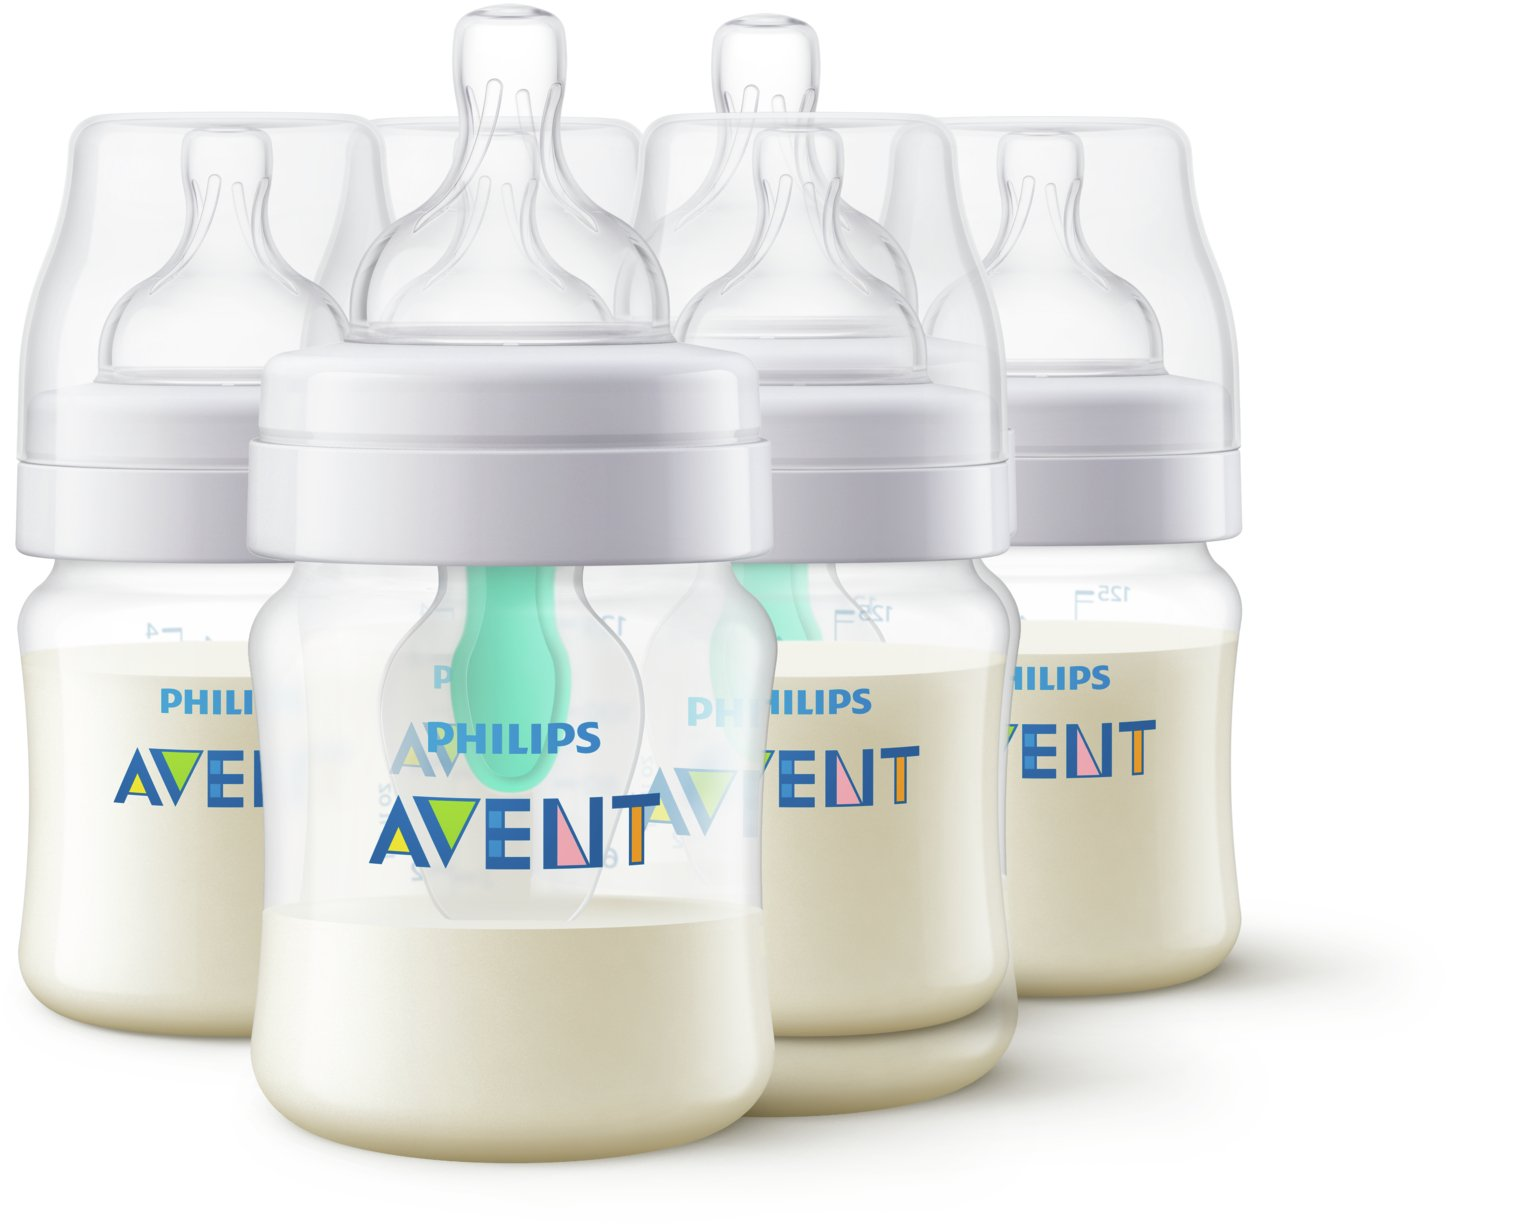 Philips Avent AirFree Vent Anti-Colic 4oz 0 Months - 3 Pack